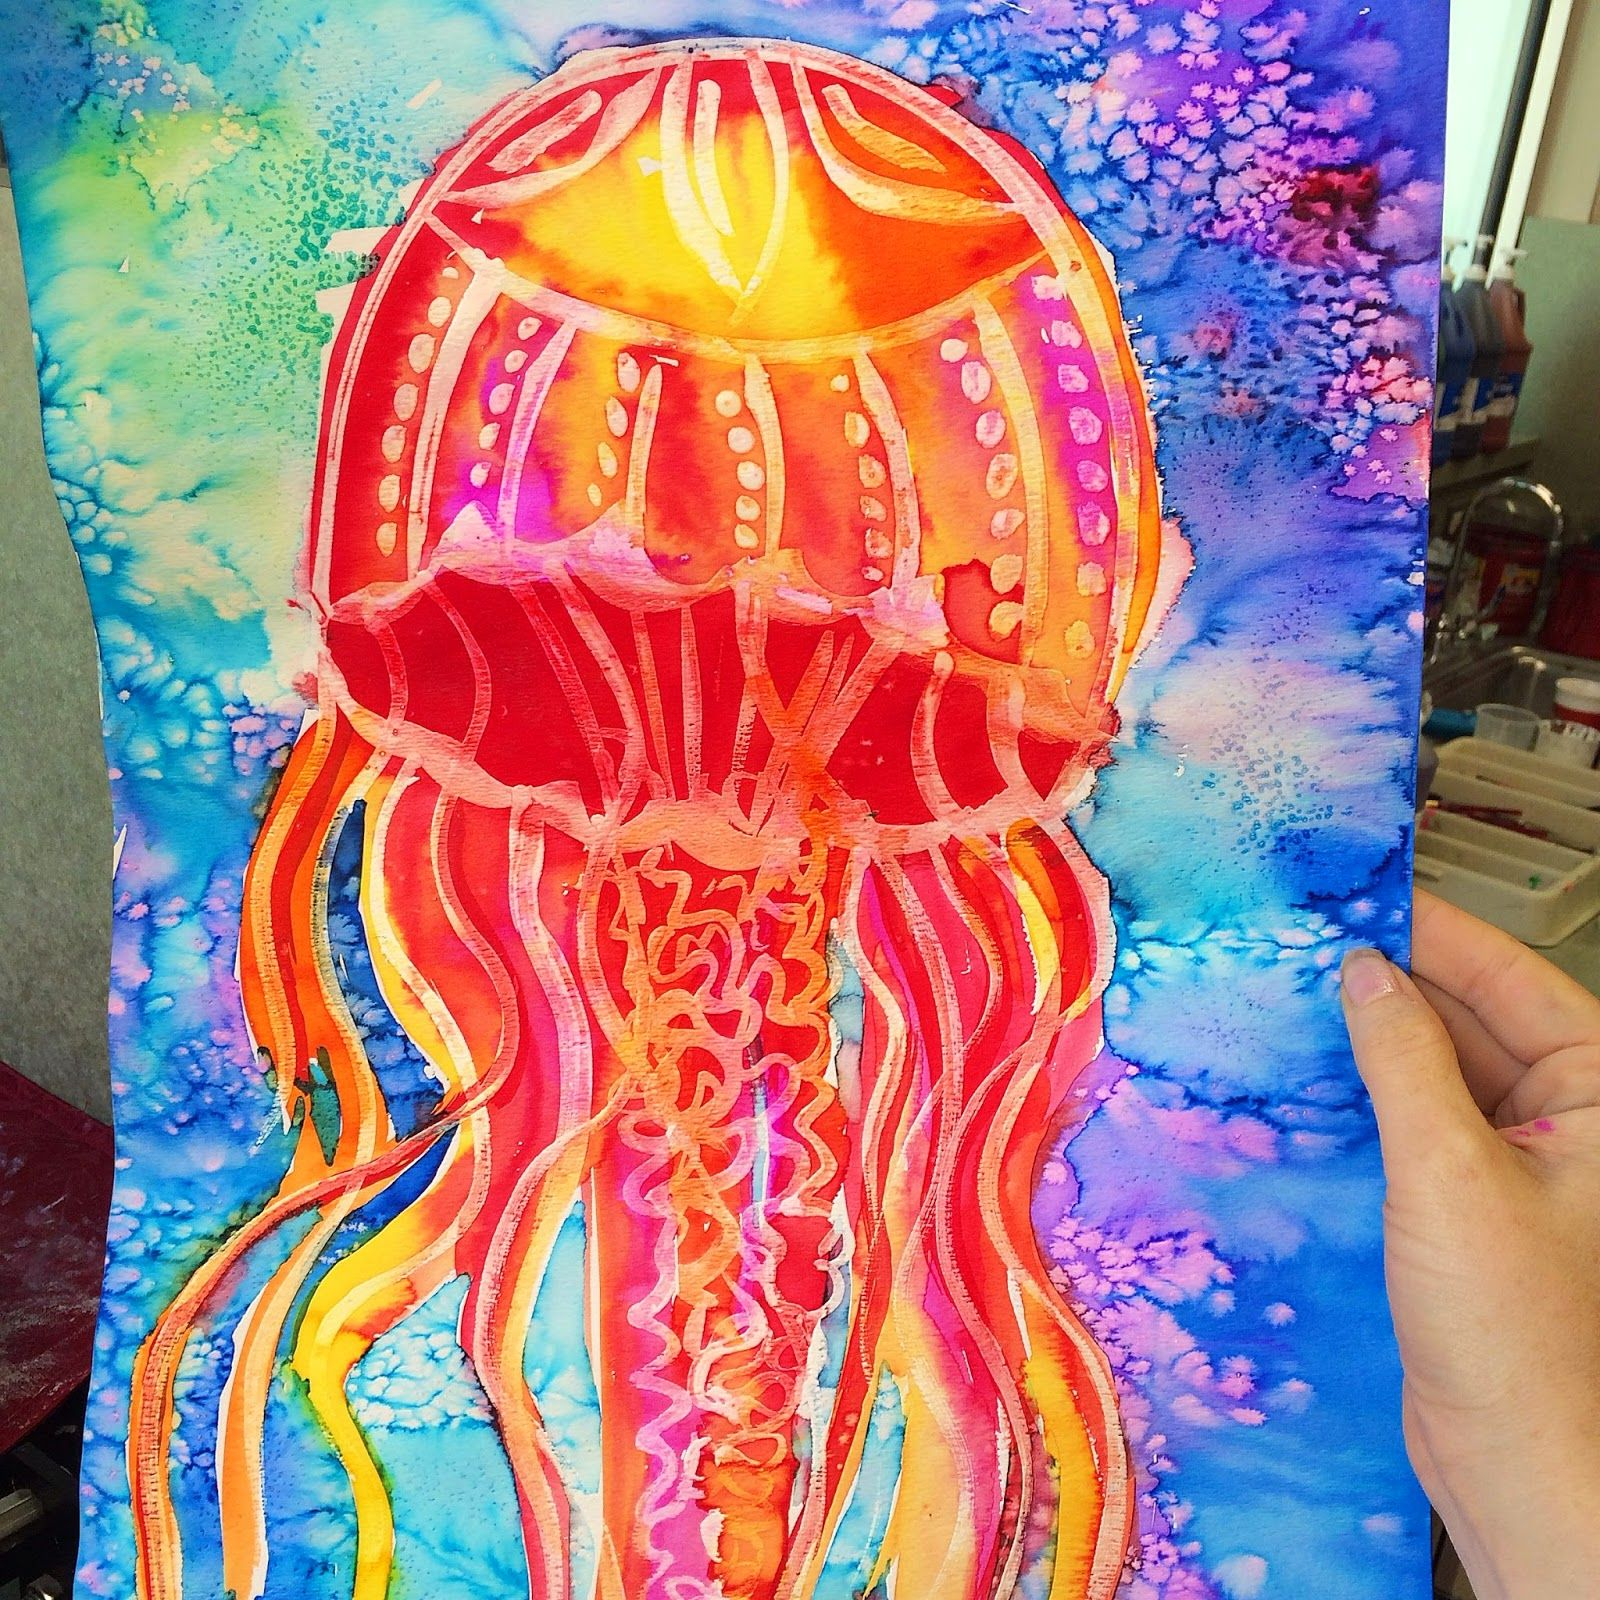 April Showers And Jellyfish Watercolor Resist Smart Class Art